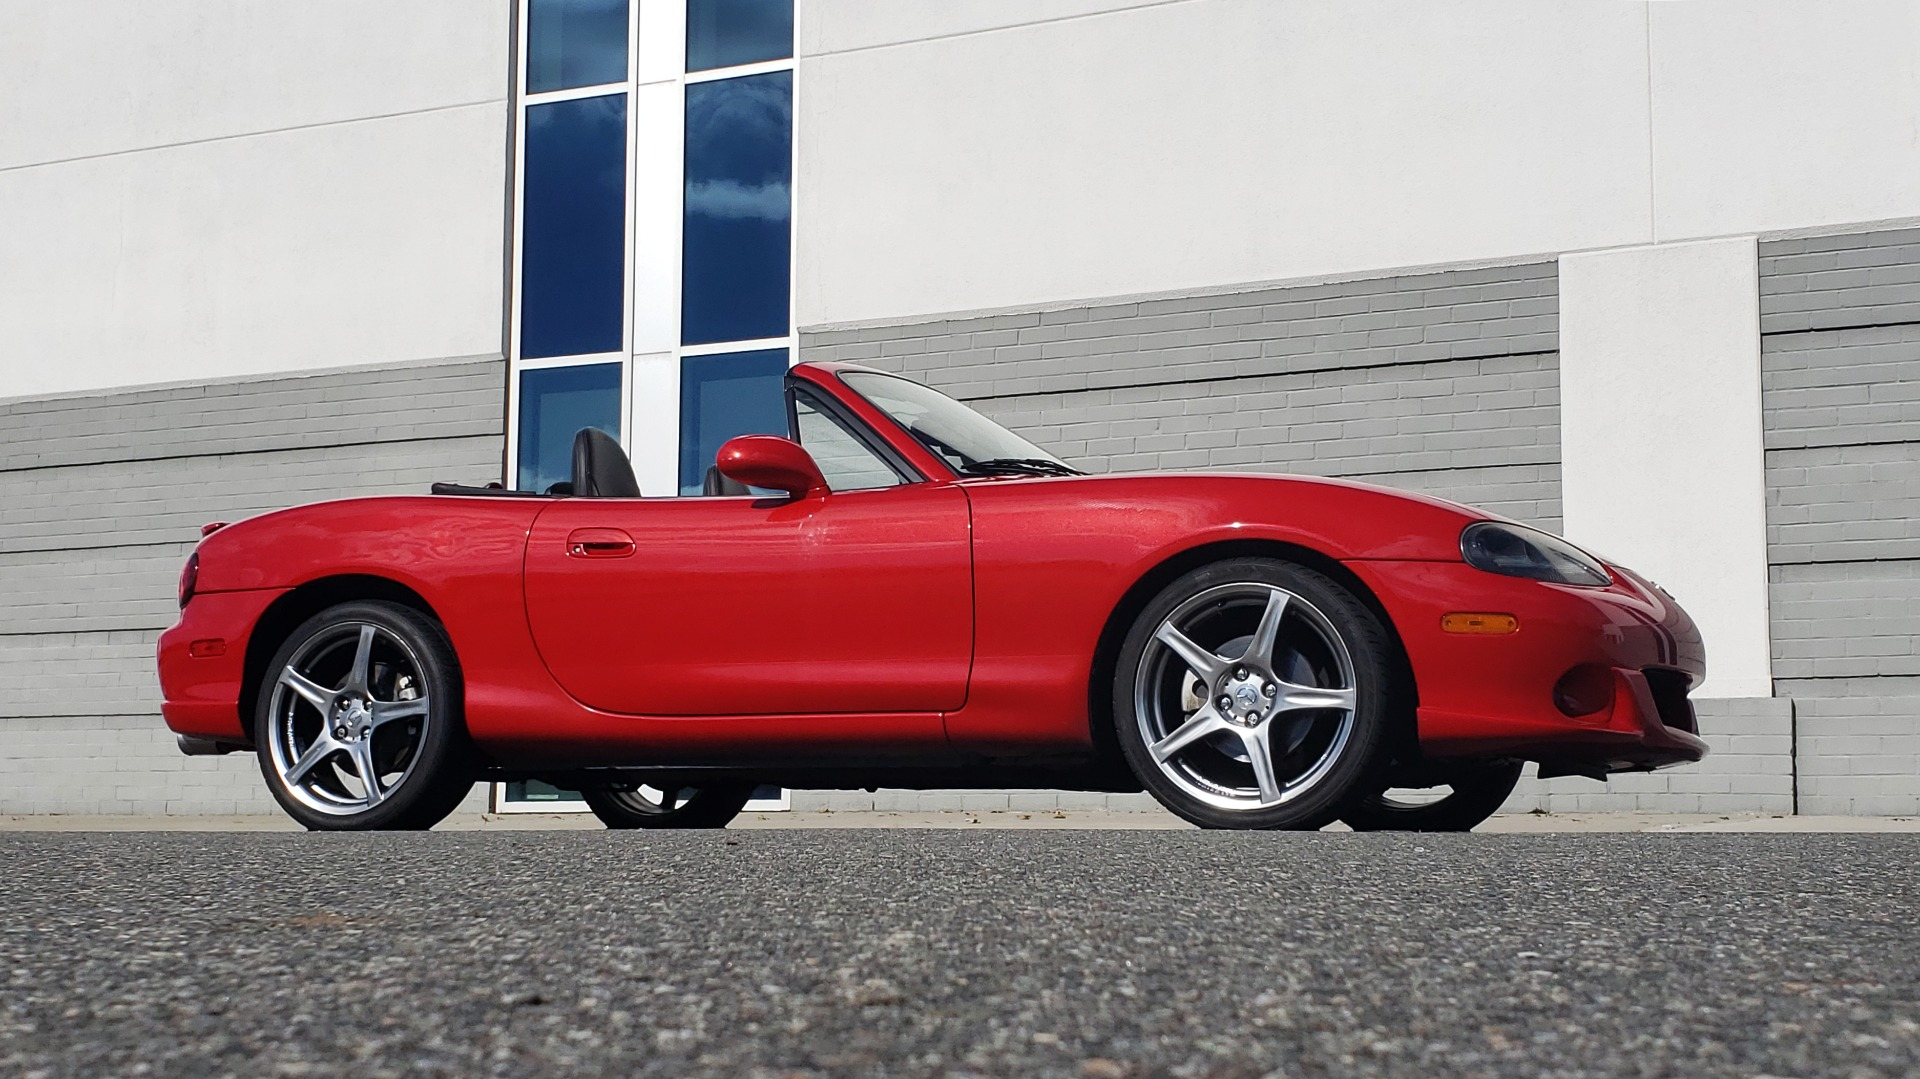 Used 2004 Mazda MX-5 MIATA 2DR CONVERTIBLE MAZDASPEED / GRAND TOURING PKG for sale Sold at Formula Imports in Charlotte NC 28227 10